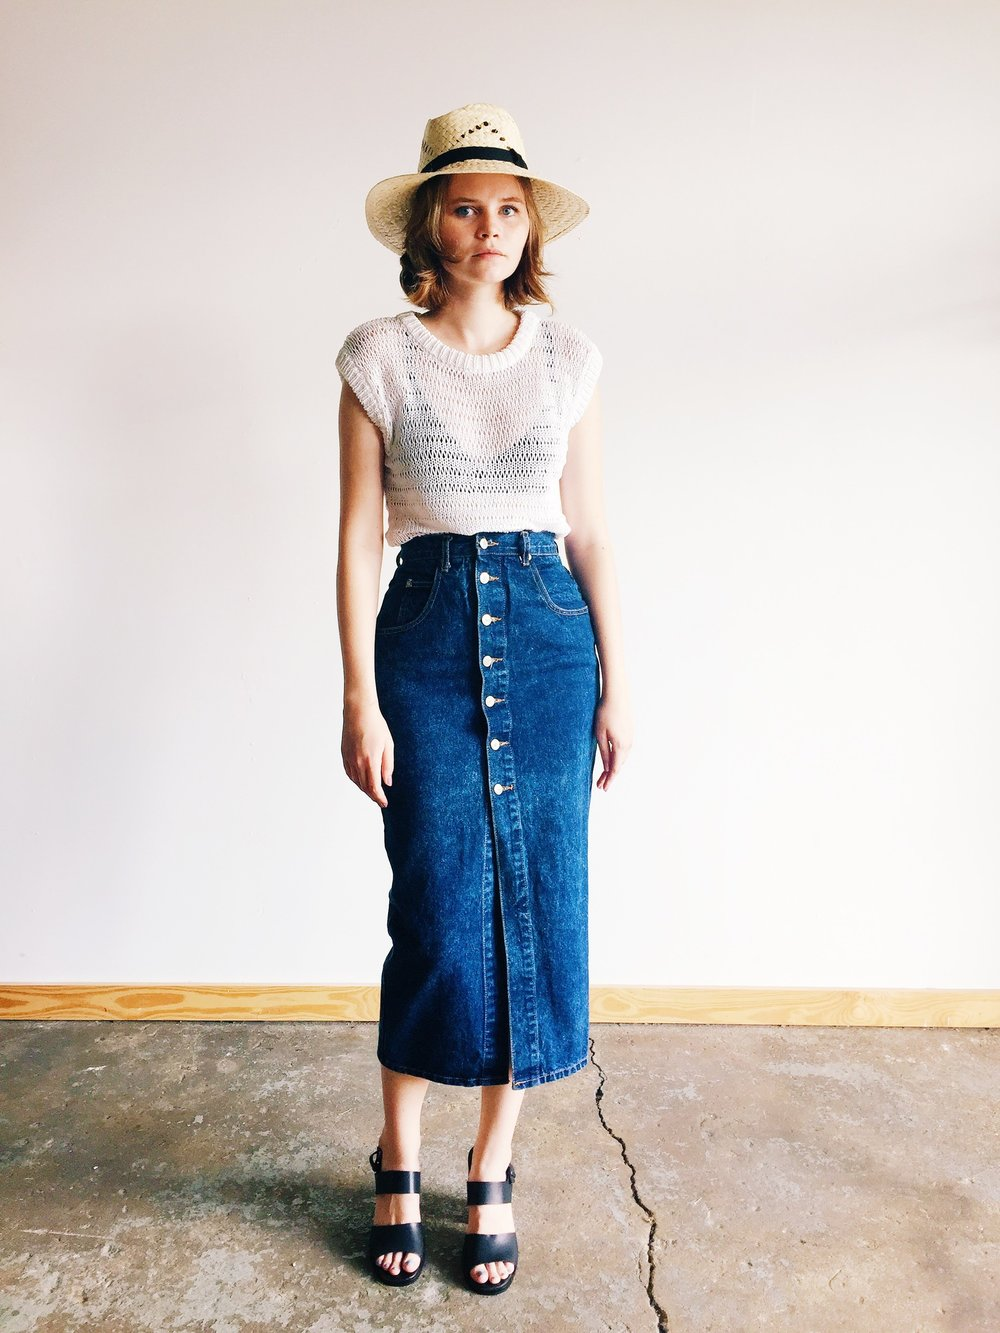 wonaponatime-long-denim-skirt-lookbook-white-hat